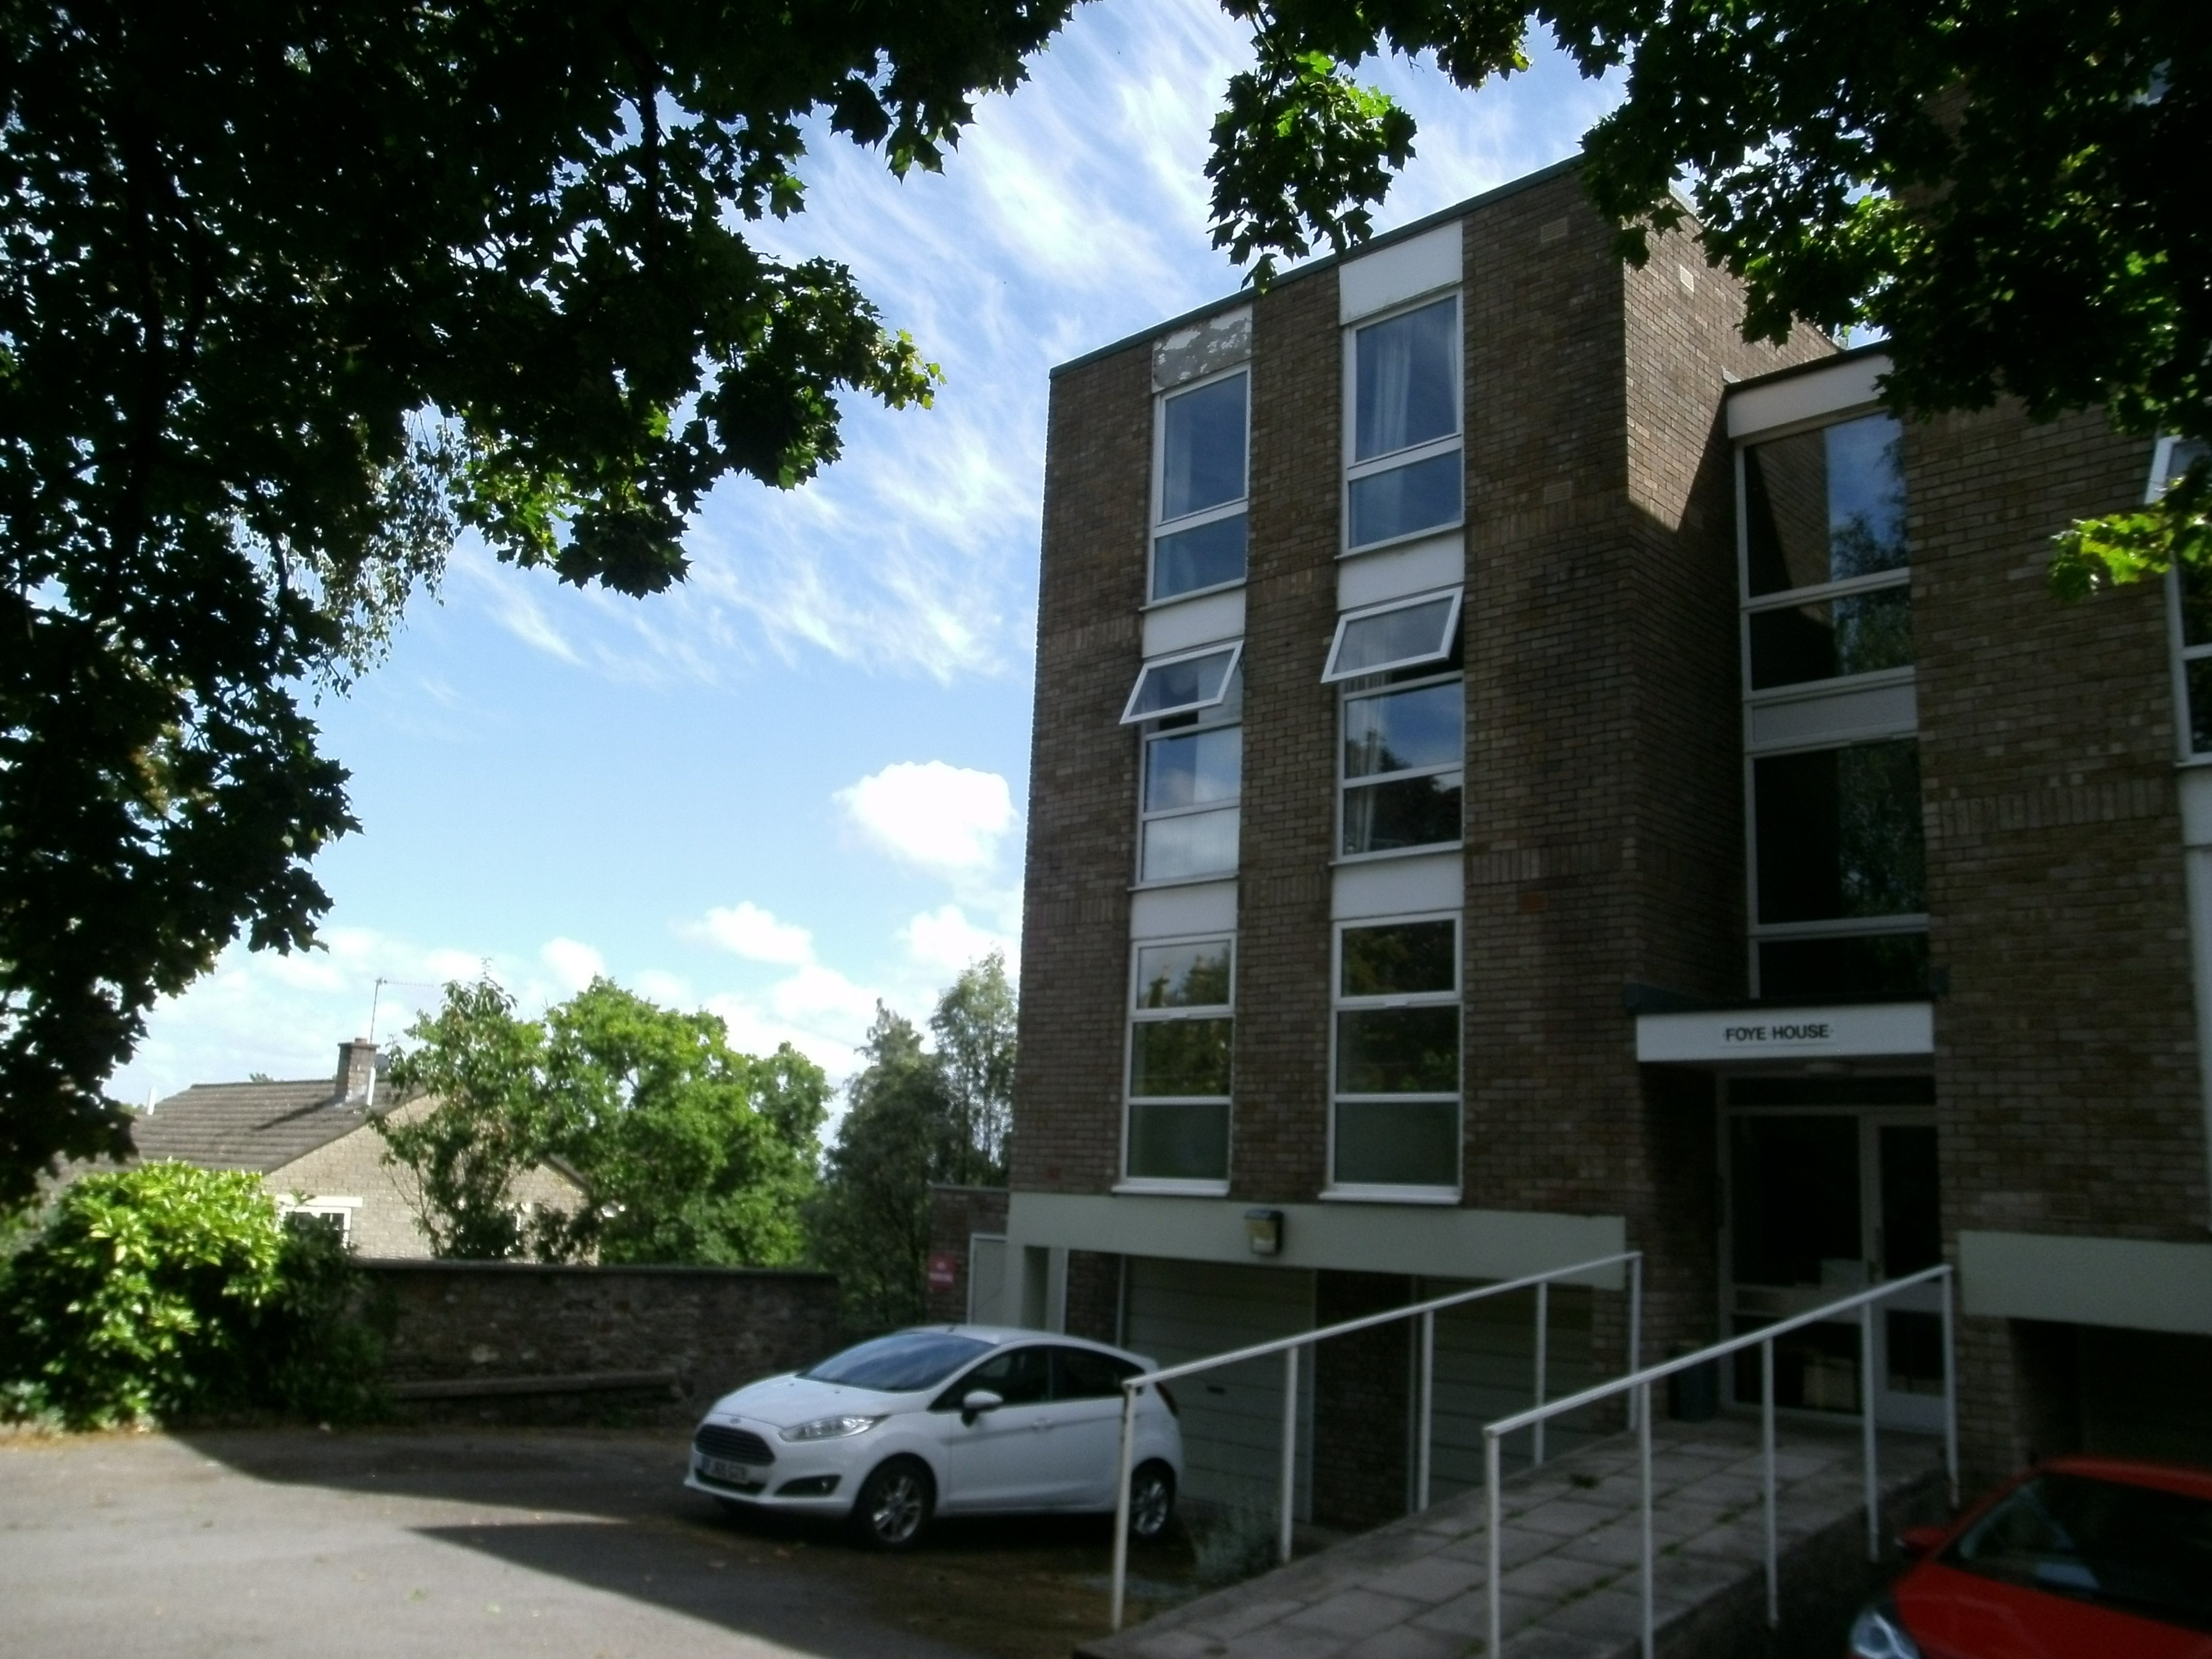 2 bed flat for sale in Bridge Road, Leigh Woods  - Property Image 1